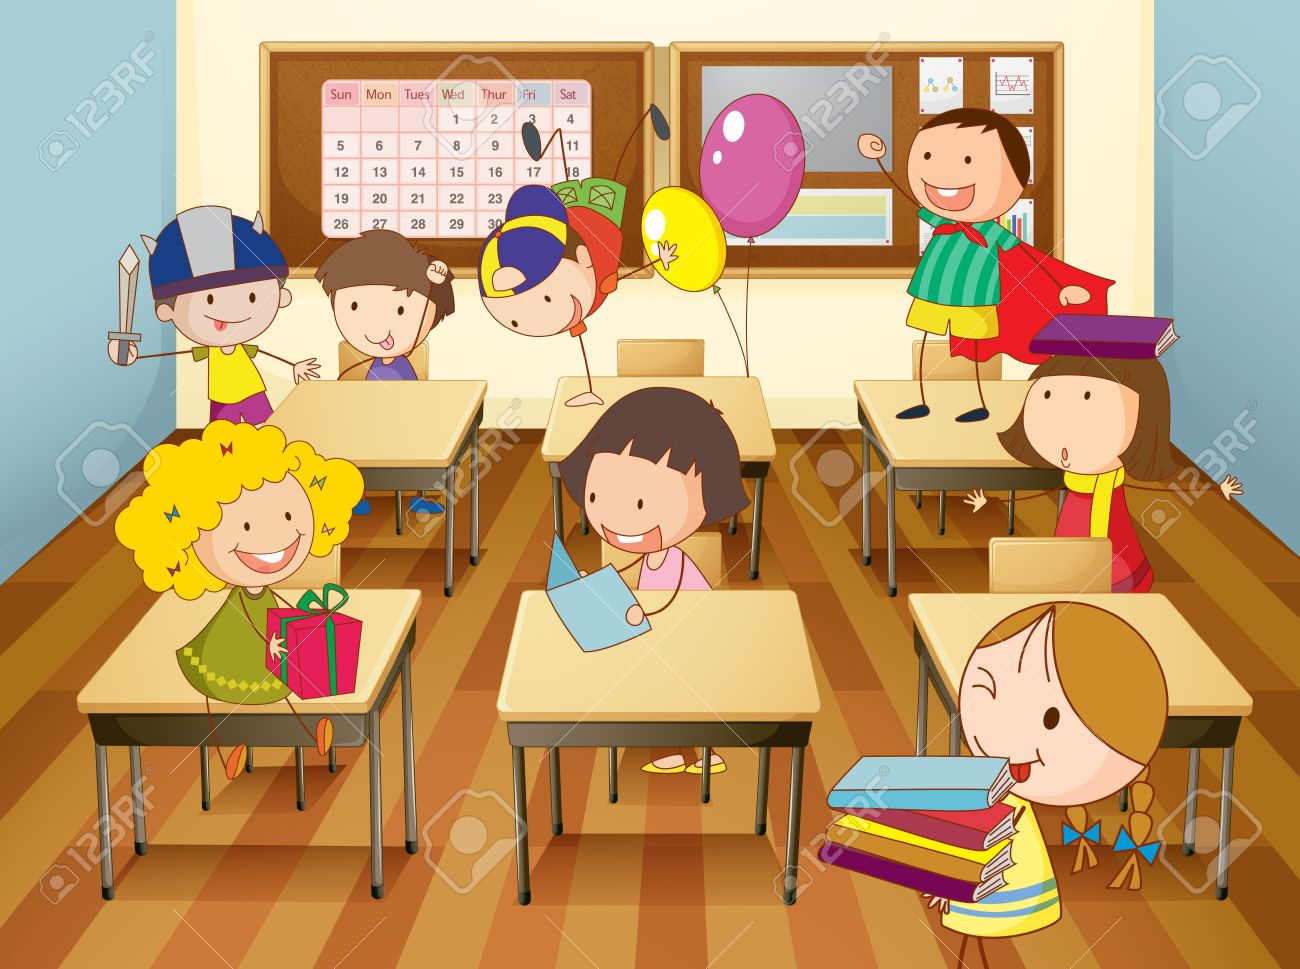 illustration of a kids studying in classroom royalty free cliparts